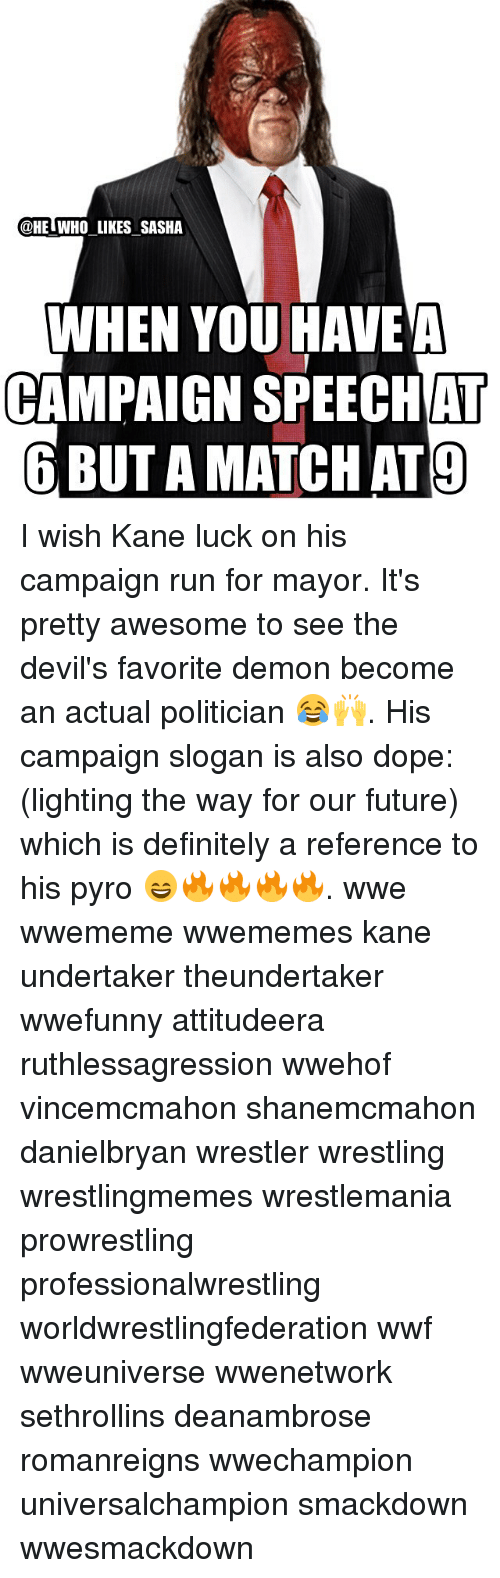 Pyro: @HE WHO LIKES SASHA  WHEN YOU HAVE A  CAMPAIGN AT  6 BUTAMATCHAT9 I wish Kane luck on his campaign run for mayor. It's pretty awesome to see the devil's favorite demon become an actual politician 😂🙌. His campaign slogan is also dope: (lighting the way for our future) which is definitely a reference to his pyro 😄🔥🔥🔥🔥. wwe wwememe wwememes kane undertaker theundertaker wwefunny attitudeera ruthlessagression wwehof vincemcmahon shanemcmahon danielbryan wrestler wrestling wrestlingmemes wrestlemania prowrestling professionalwrestling worldwrestlingfederation wwf wweuniverse wwenetwork sethrollins deanambrose romanreigns wwechampion universalchampion smackdown wwesmackdown